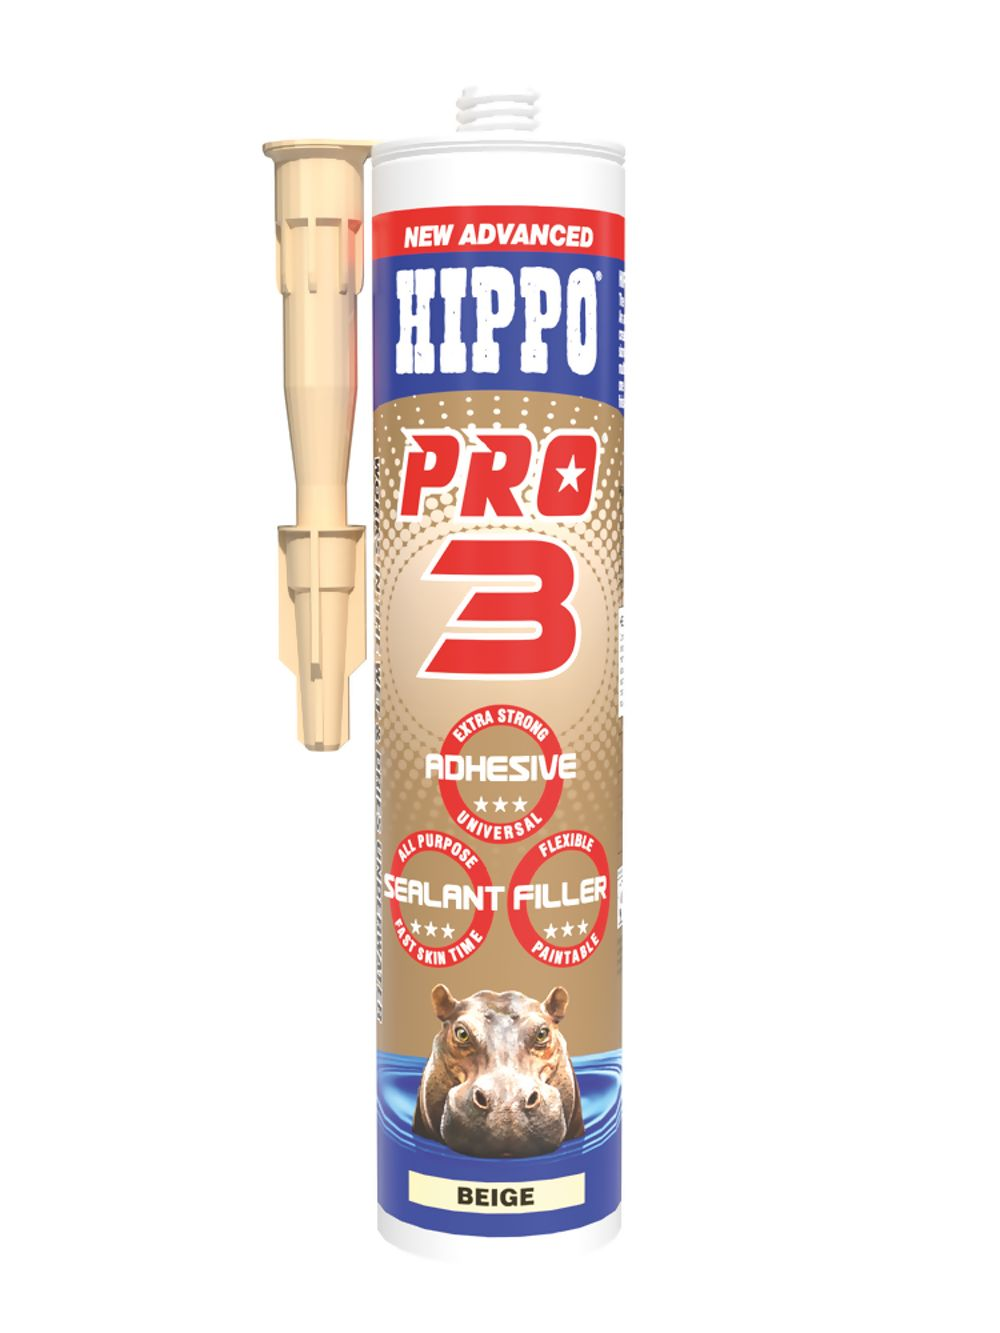 Hippo Pro 3 All Weather Sealant, Adhesive & Filler Beige 310ml Ref H18519